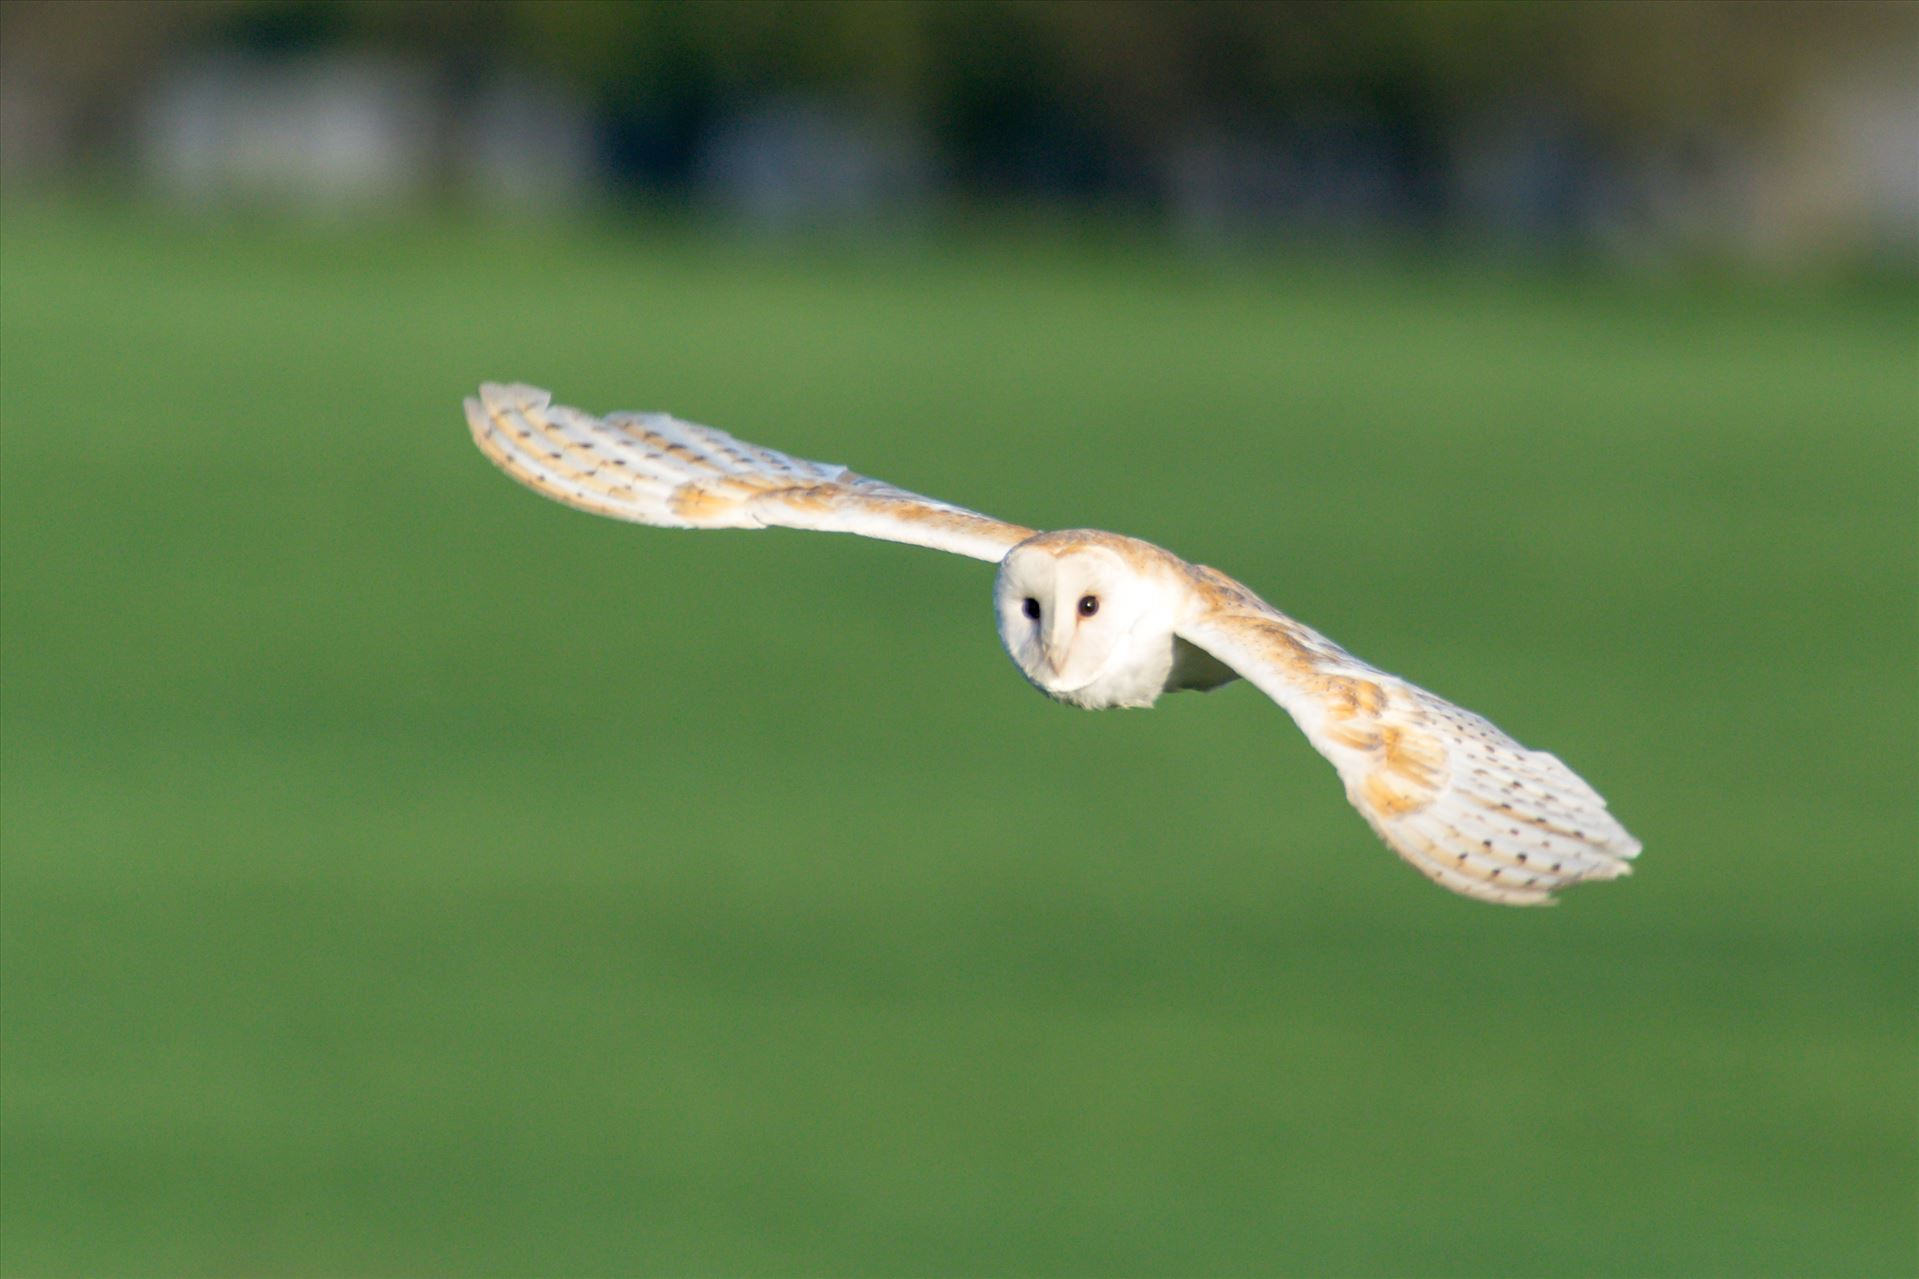 Barn Owl on the hunt 04 - A Barn Owl on the hunt for its breakfast by AJ Stoves Photography